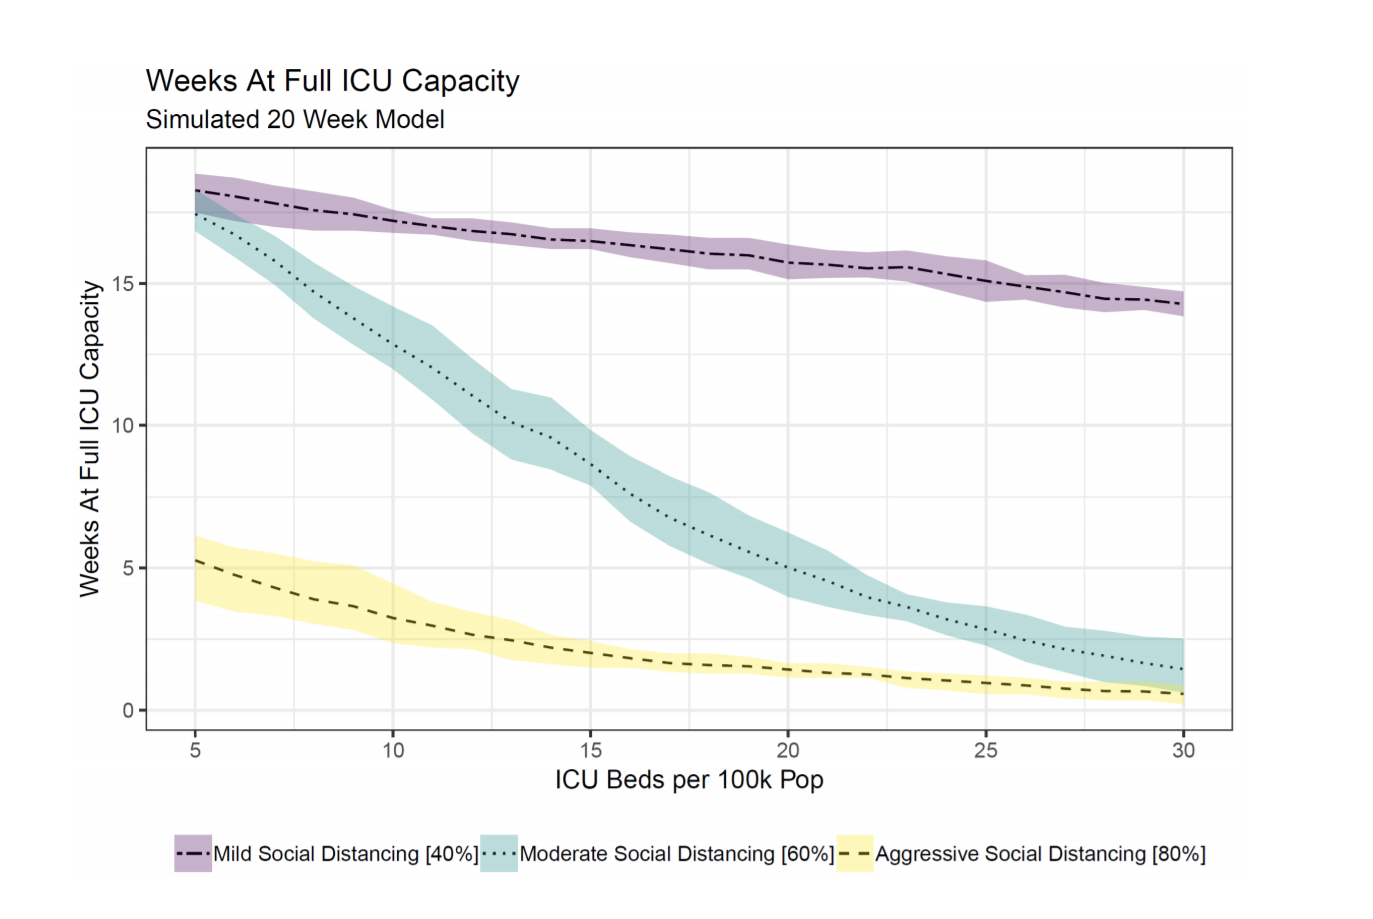 Model-based estimates of time to maximum bed occupancy for COVID-19 care